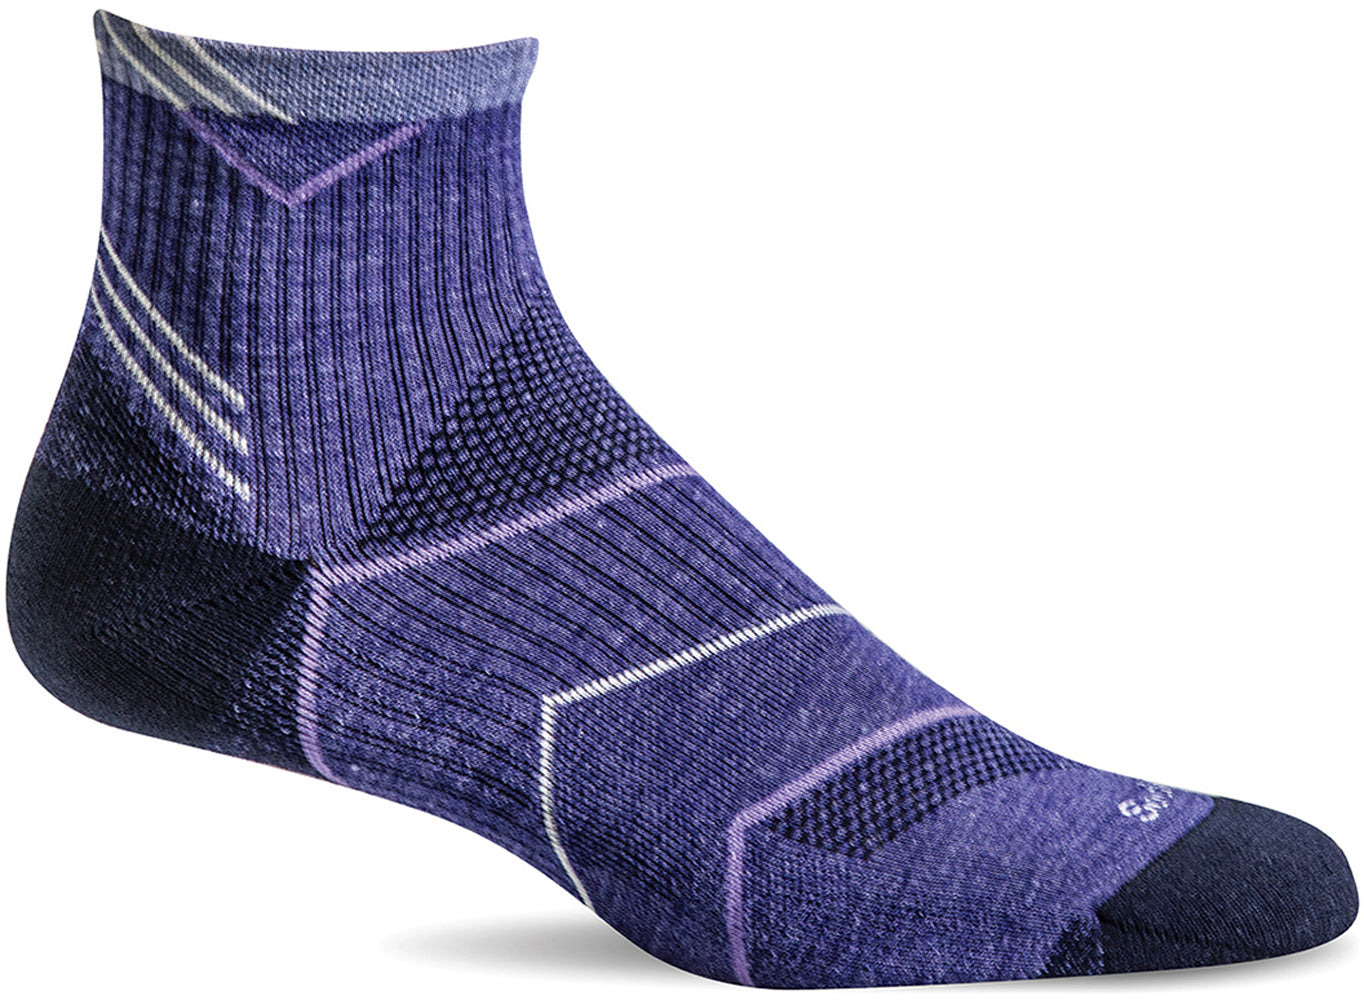 Sockwell Women's Incline Quarter Sock in Hyacinth color from the side